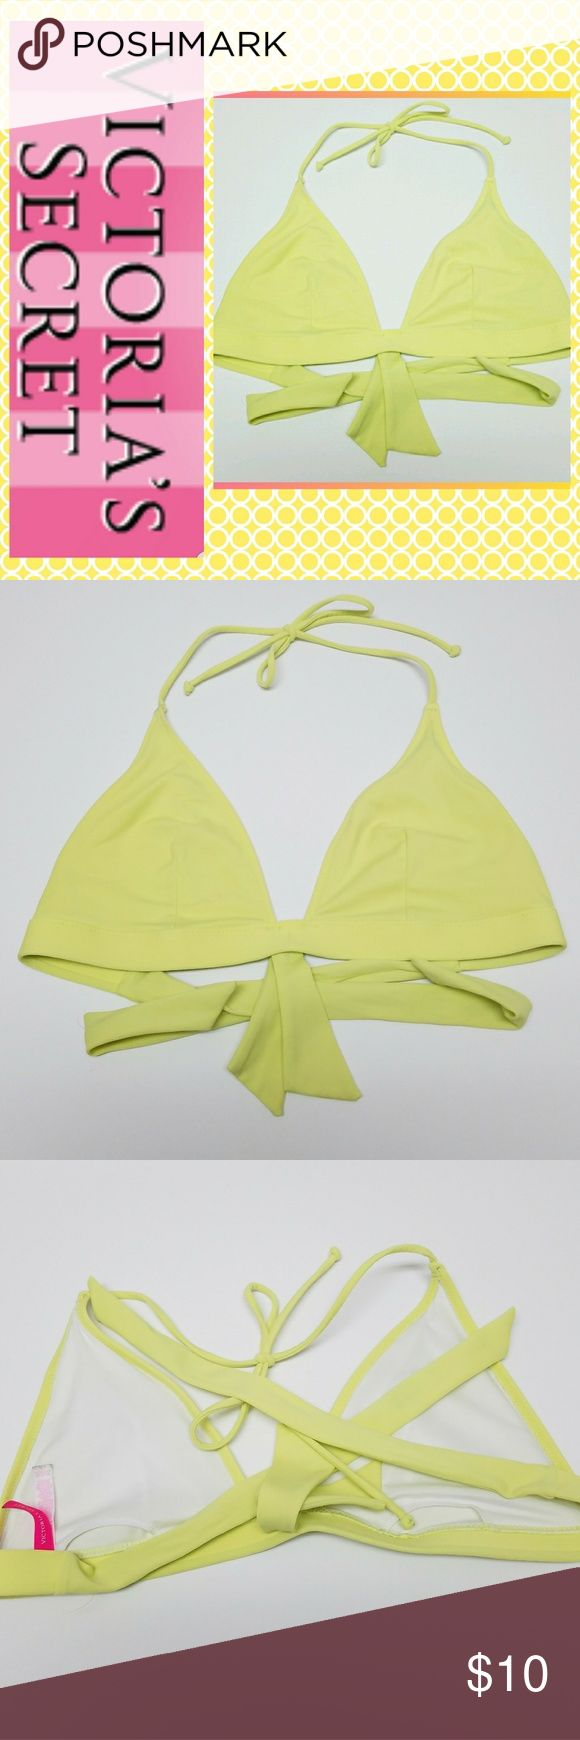 Cute VS Swim Bikini Top In great condition, Reposhing sadly did not fit me, size L, highlight yellow color, no padding, but has inserts for swim pads  ***WEEKEND SALE IN CLOSET*** 🎀= bundle 3 for $10 or 4 for $12 I'm moving cross country and need to get rid of stuff :) ♡Thanks for looking♡ Victoria's Secret Swim Bikinis